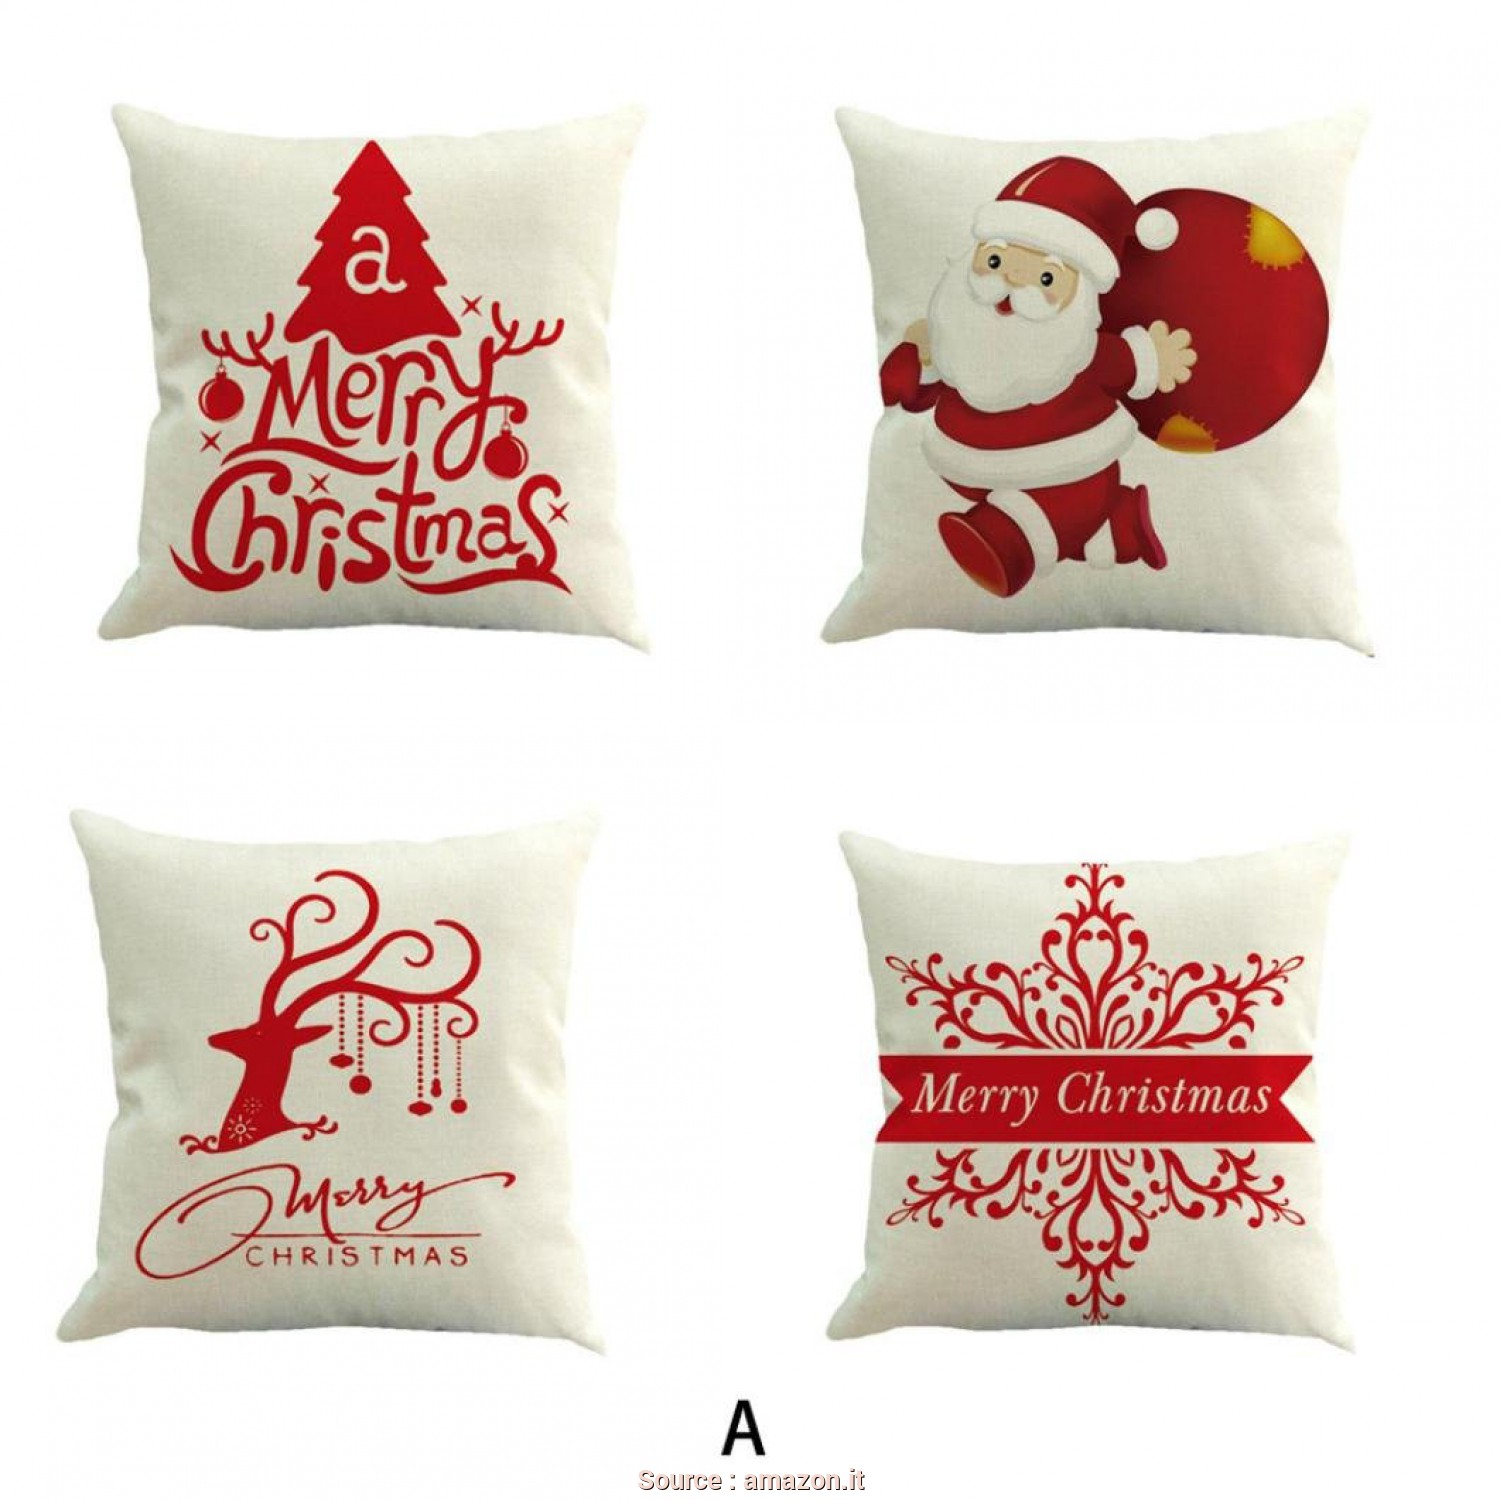 Amazon Cuscini Divano Natalizi, Magnifico Federa Di Natale,Kword, Federa Cuscino Seta Home Vita Cuscino Cotone Lino Divano, Throw Pillow Case, Natale,Federa Cuscino Letto (A): Amazon.It: